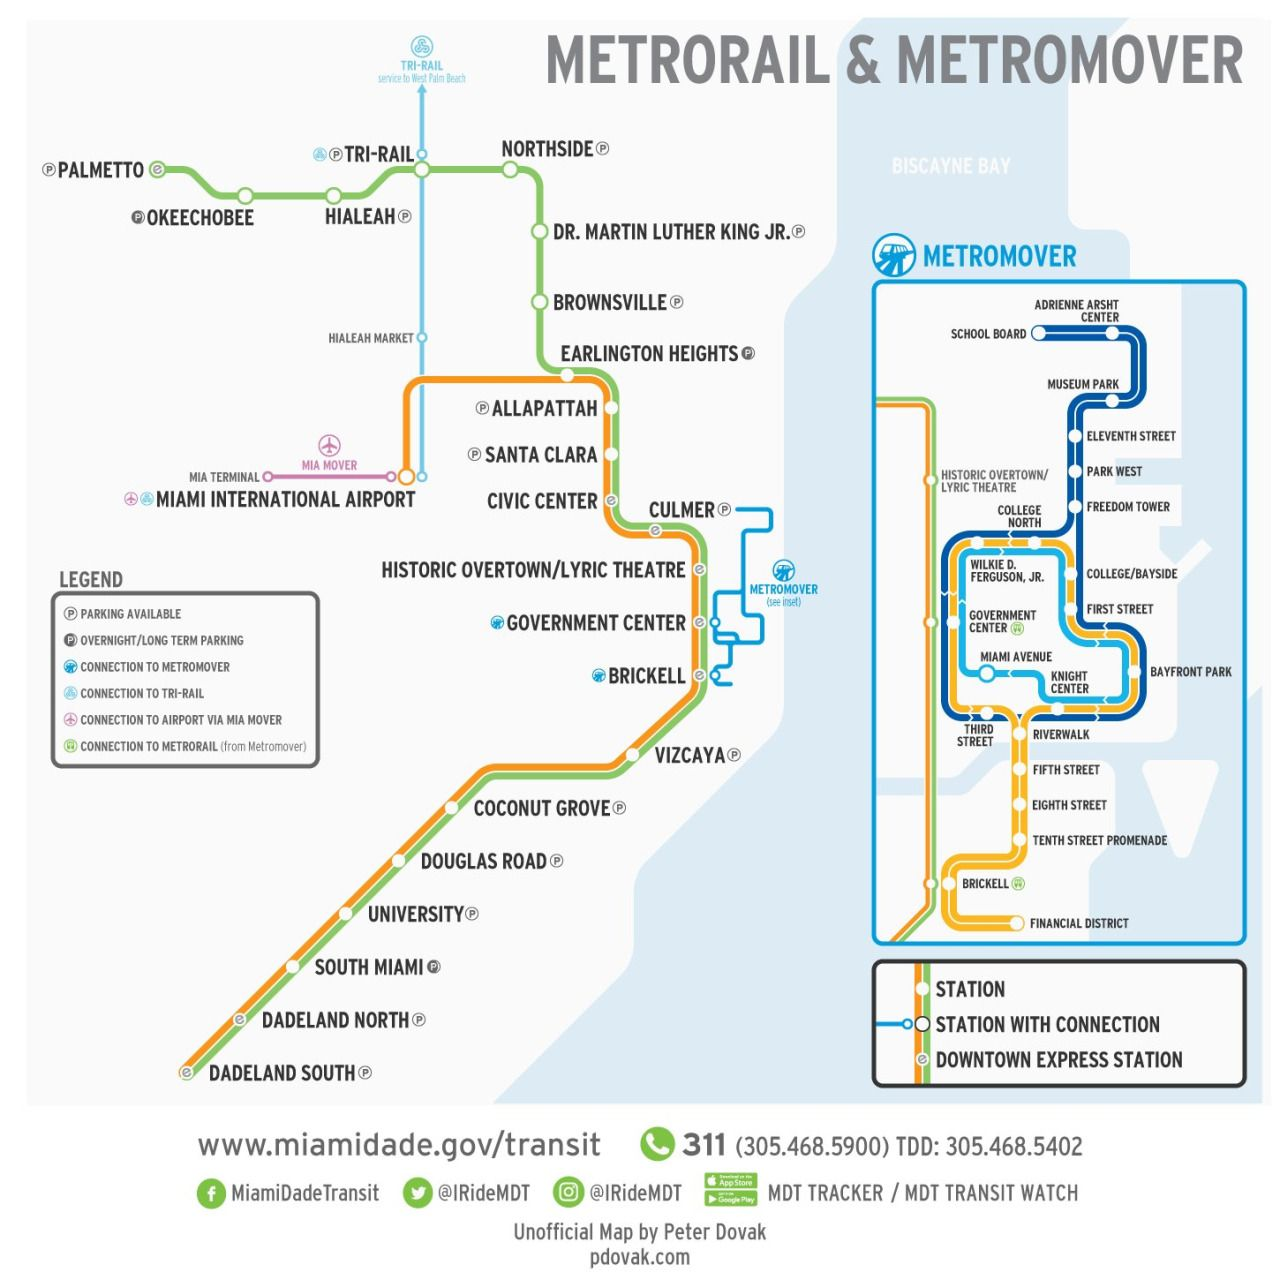 Unofficial Map Miami Dade Metrorail and Metromover by Peter Dovak